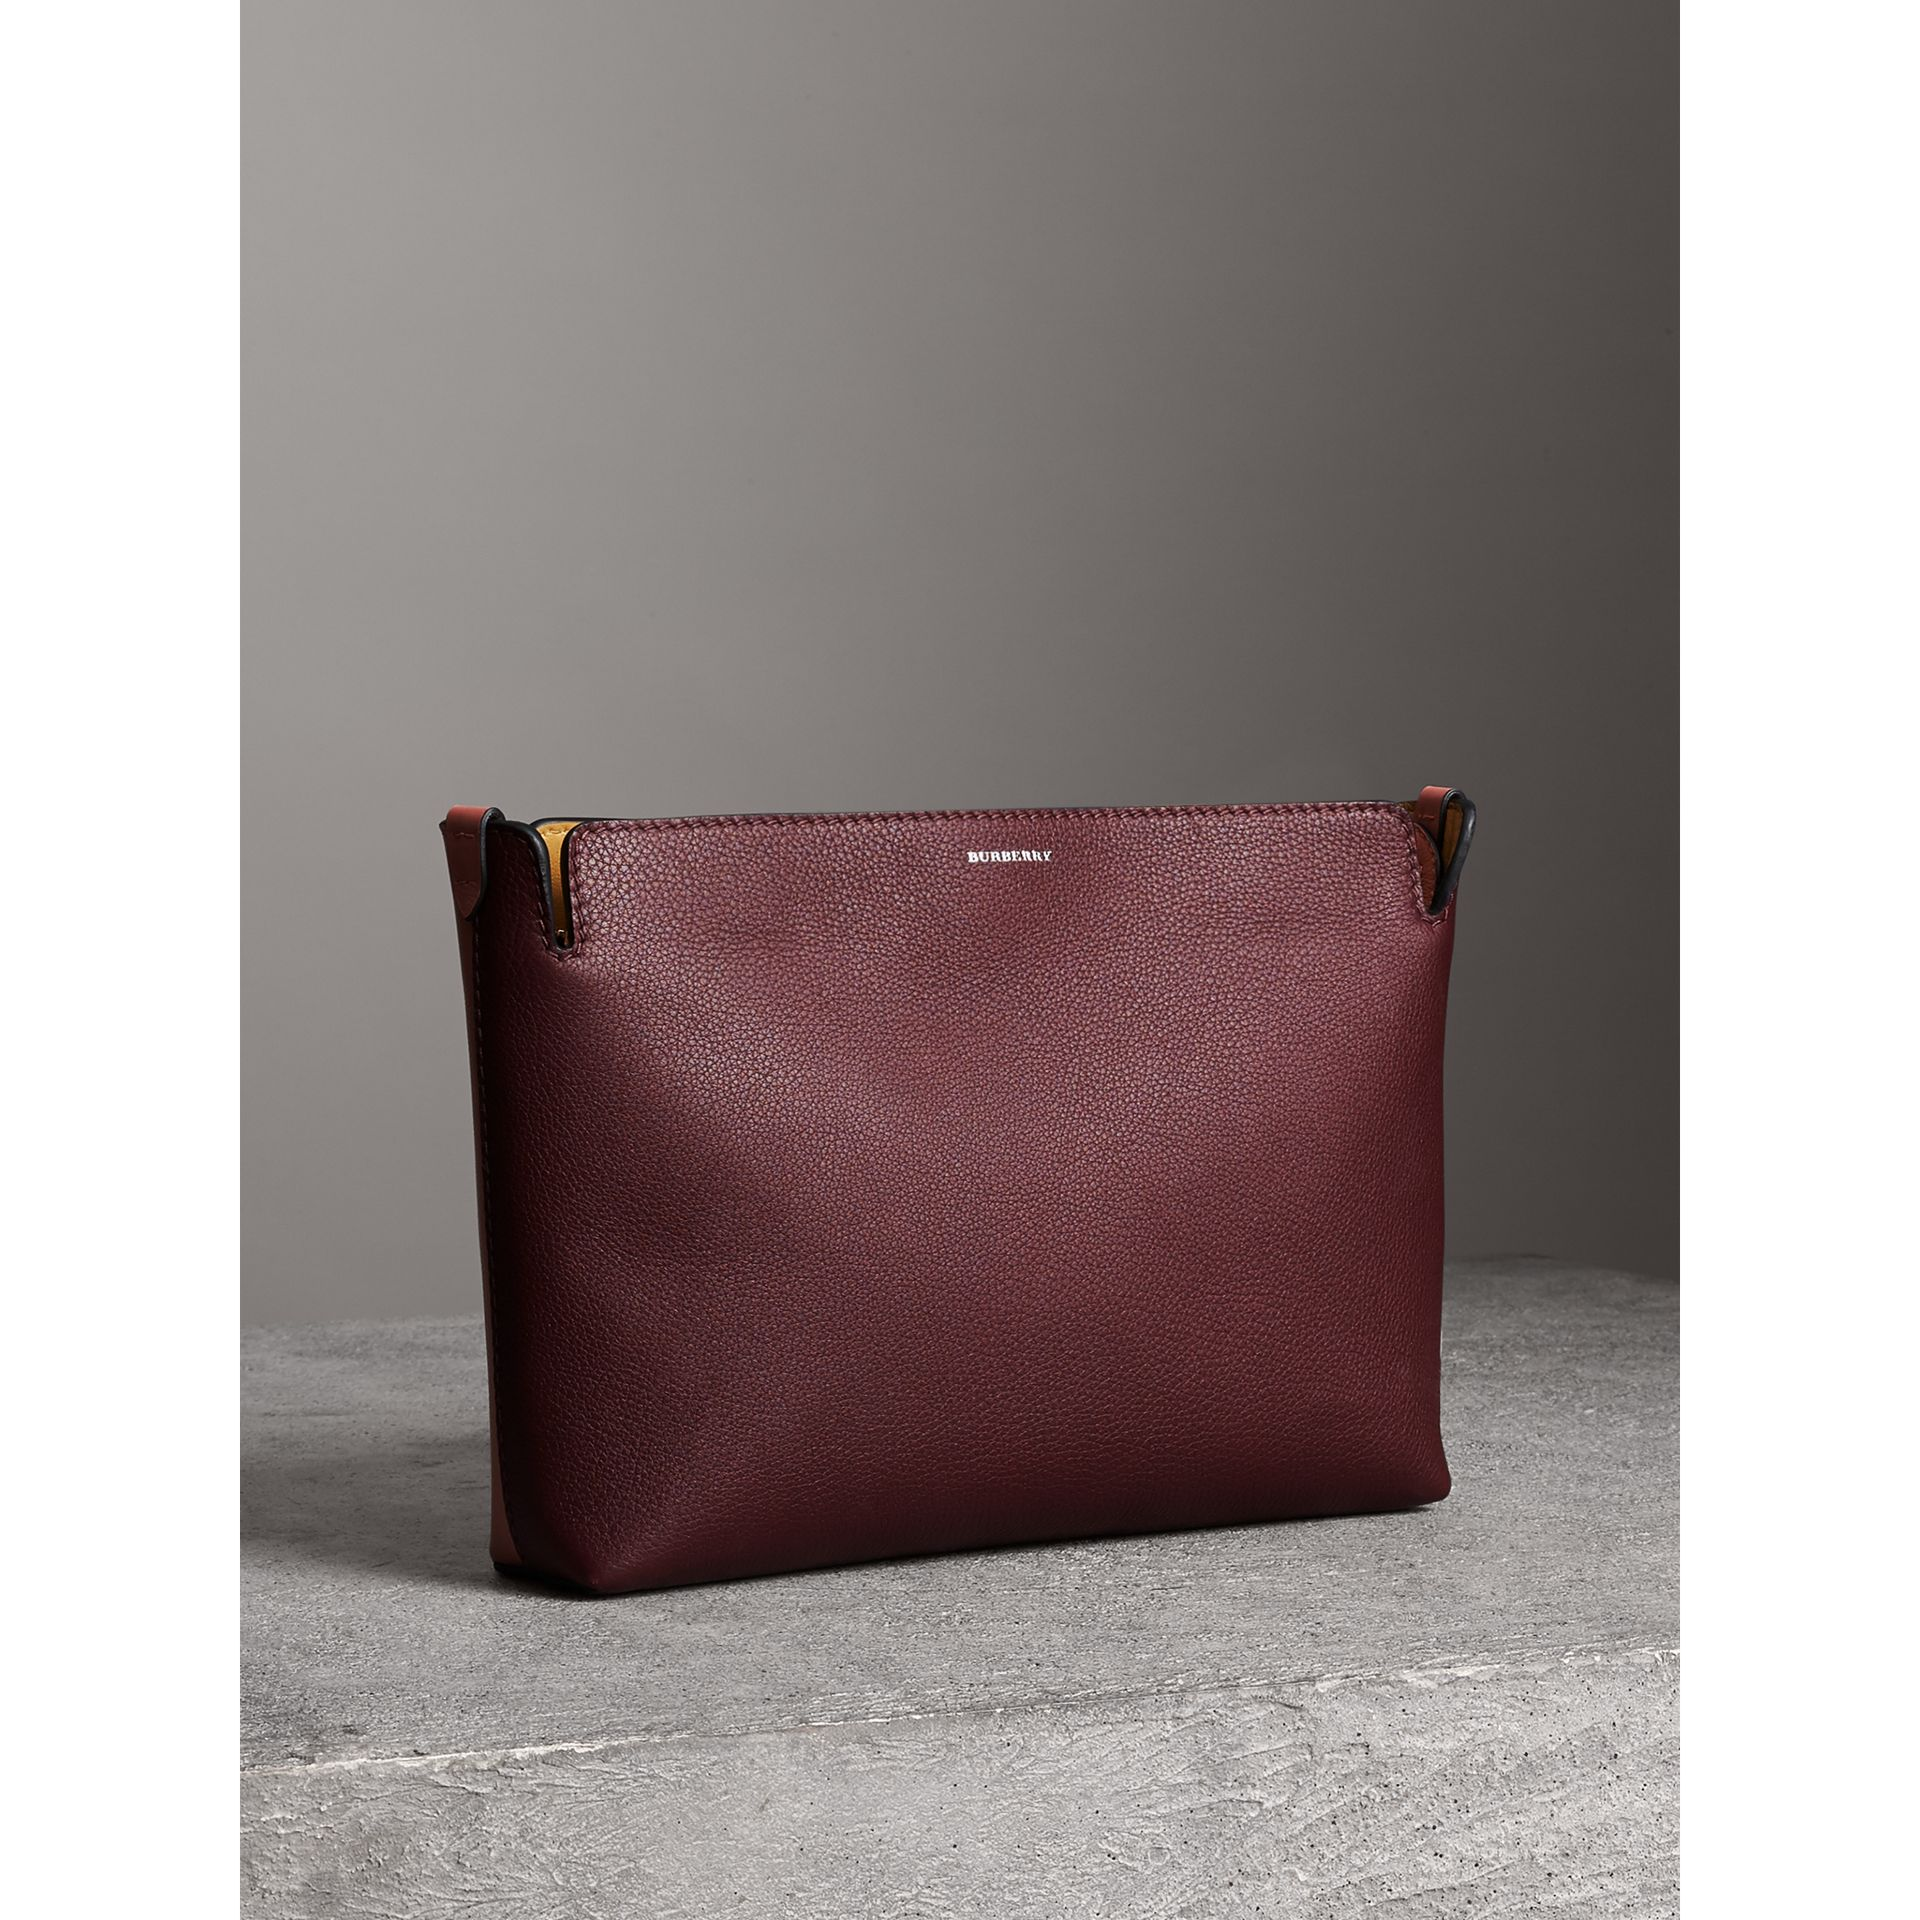 Medium Tri-tone Leather Clutch in Deep Claret/dusty Rose - Women | Burberry - gallery image 6